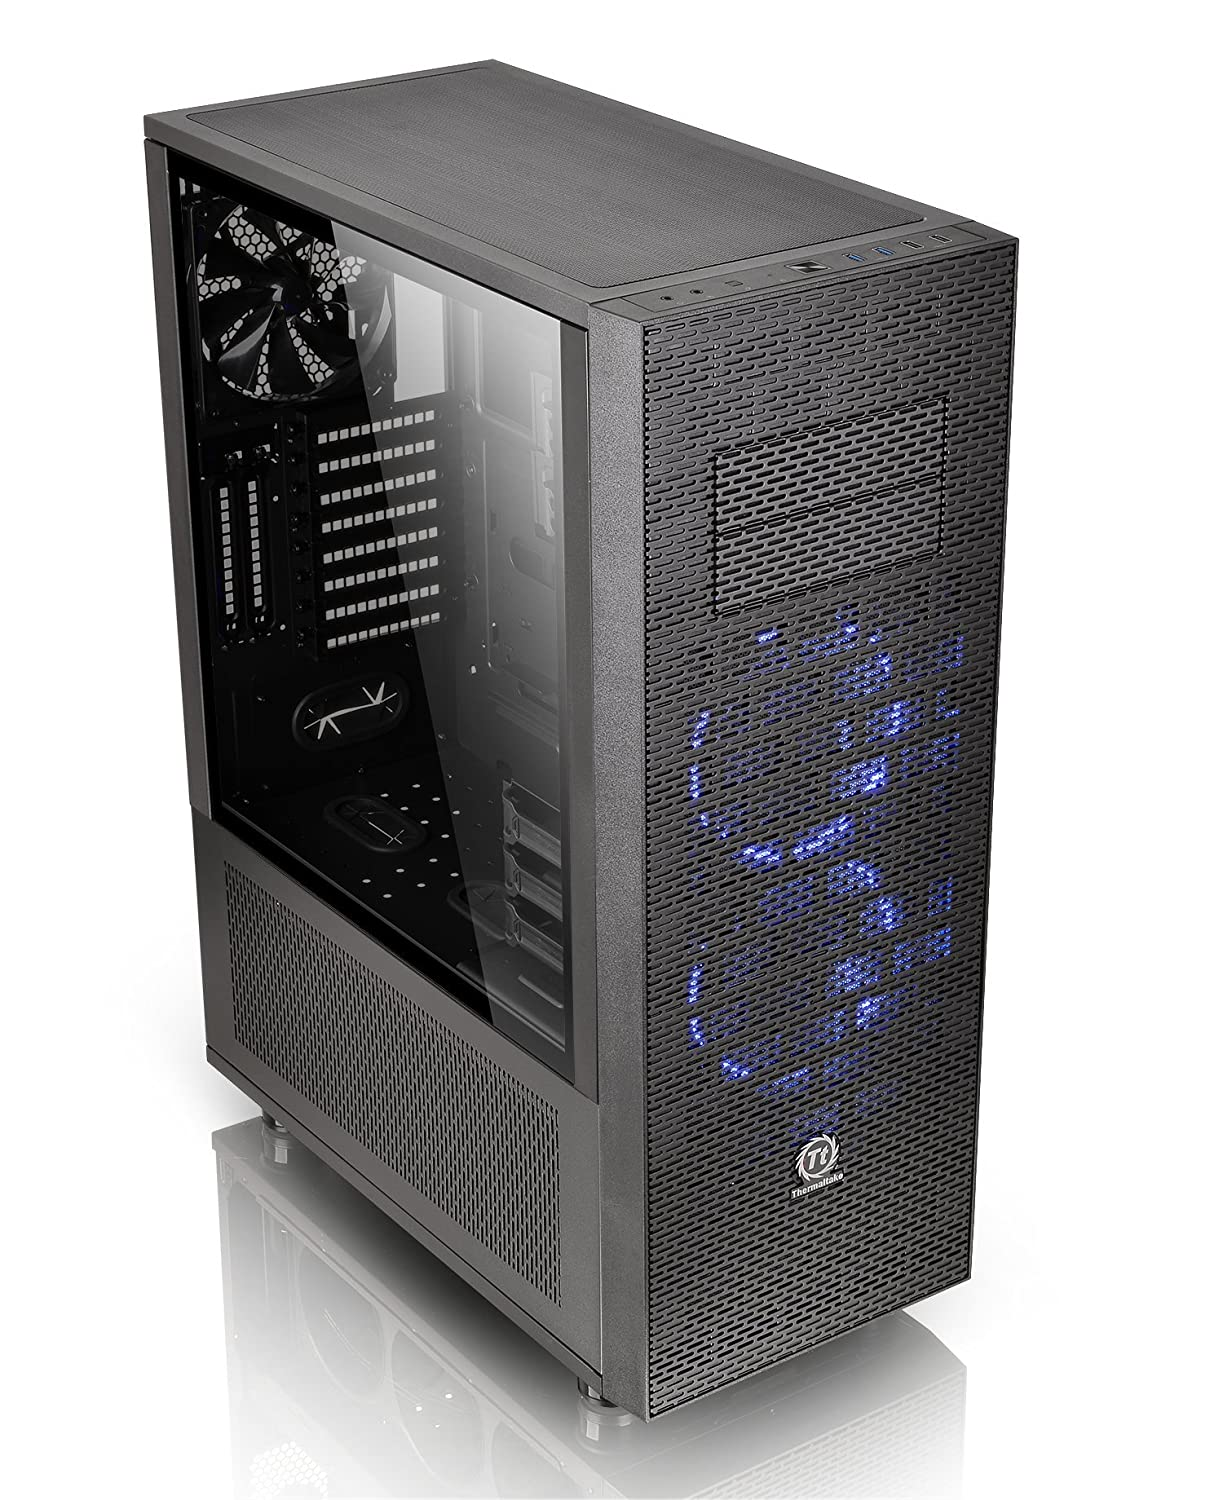 Thermaltake CA-1F8-00M1WN-02 Core X71 Tempered Glass Edition Black